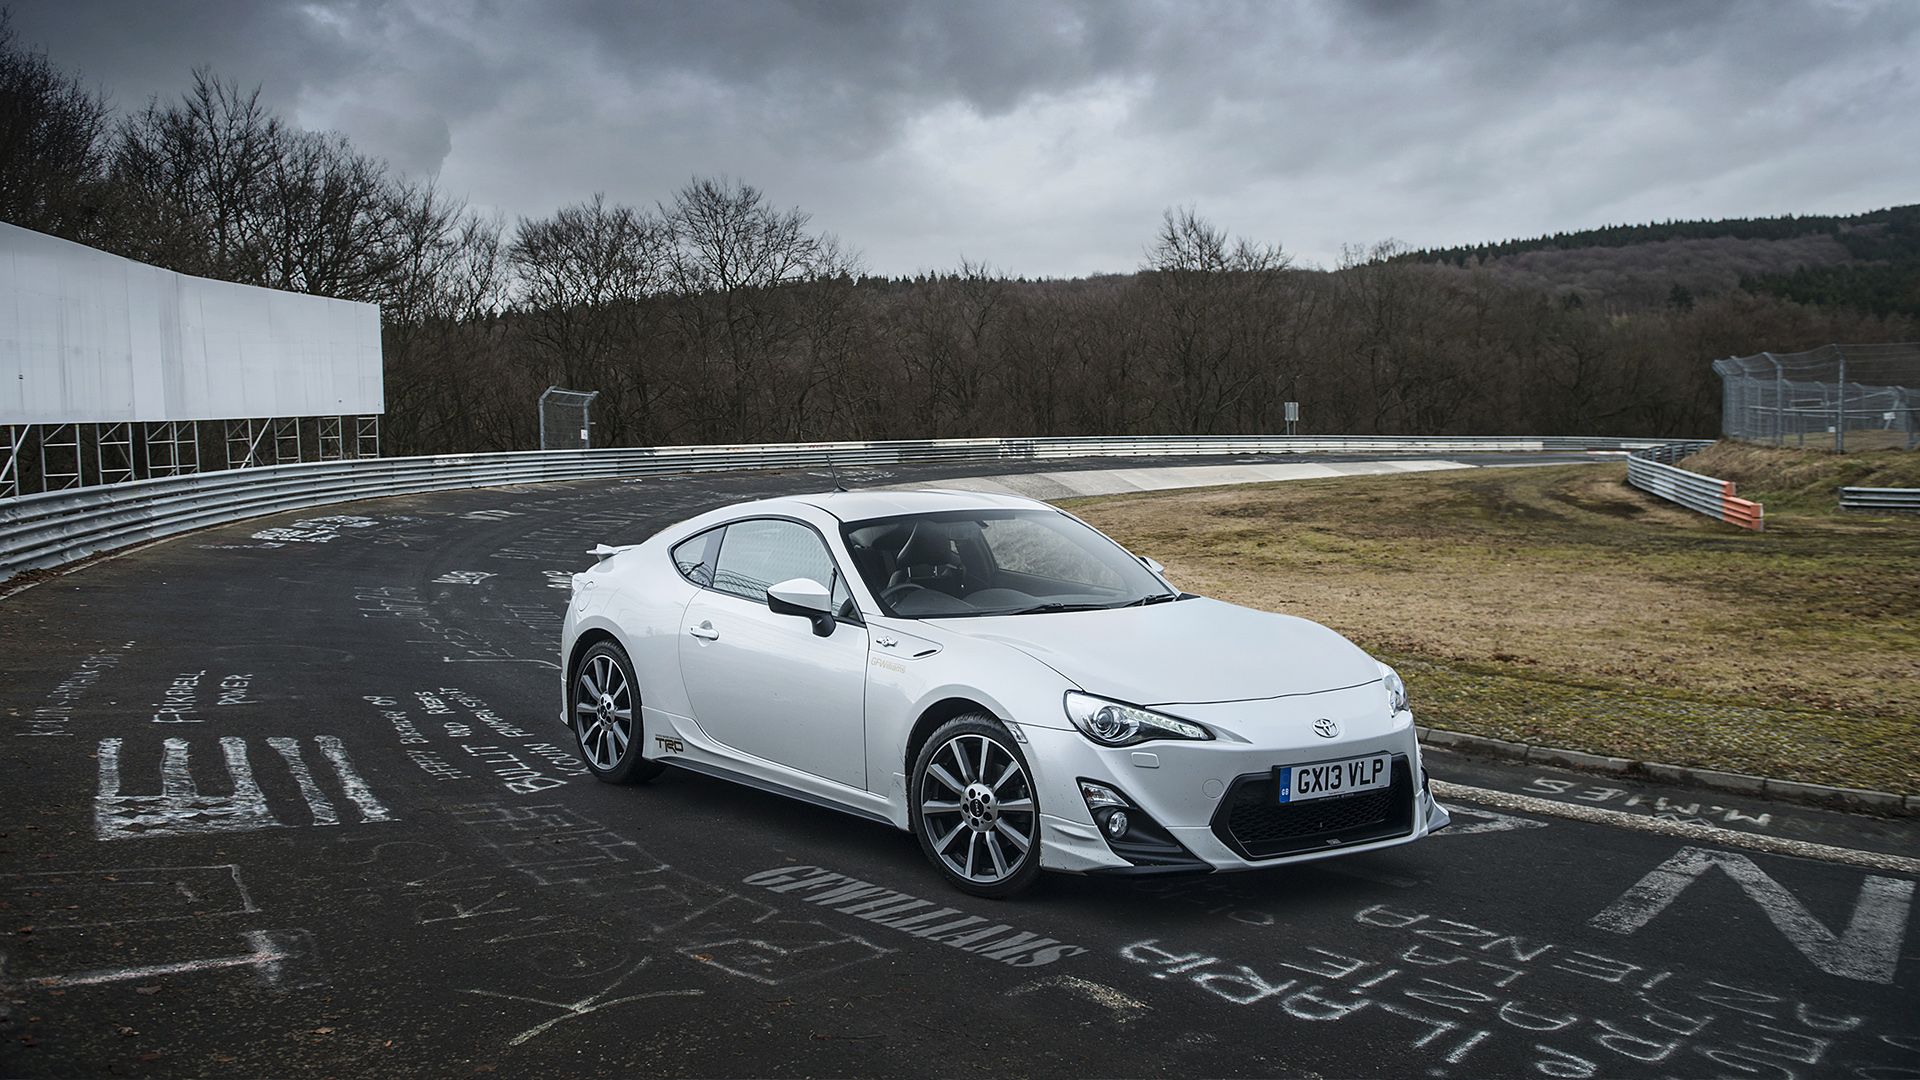 2014 Toyota Gt 86 Trd Picture - Goodwood Gt86 Trd , HD Wallpaper & Backgrounds